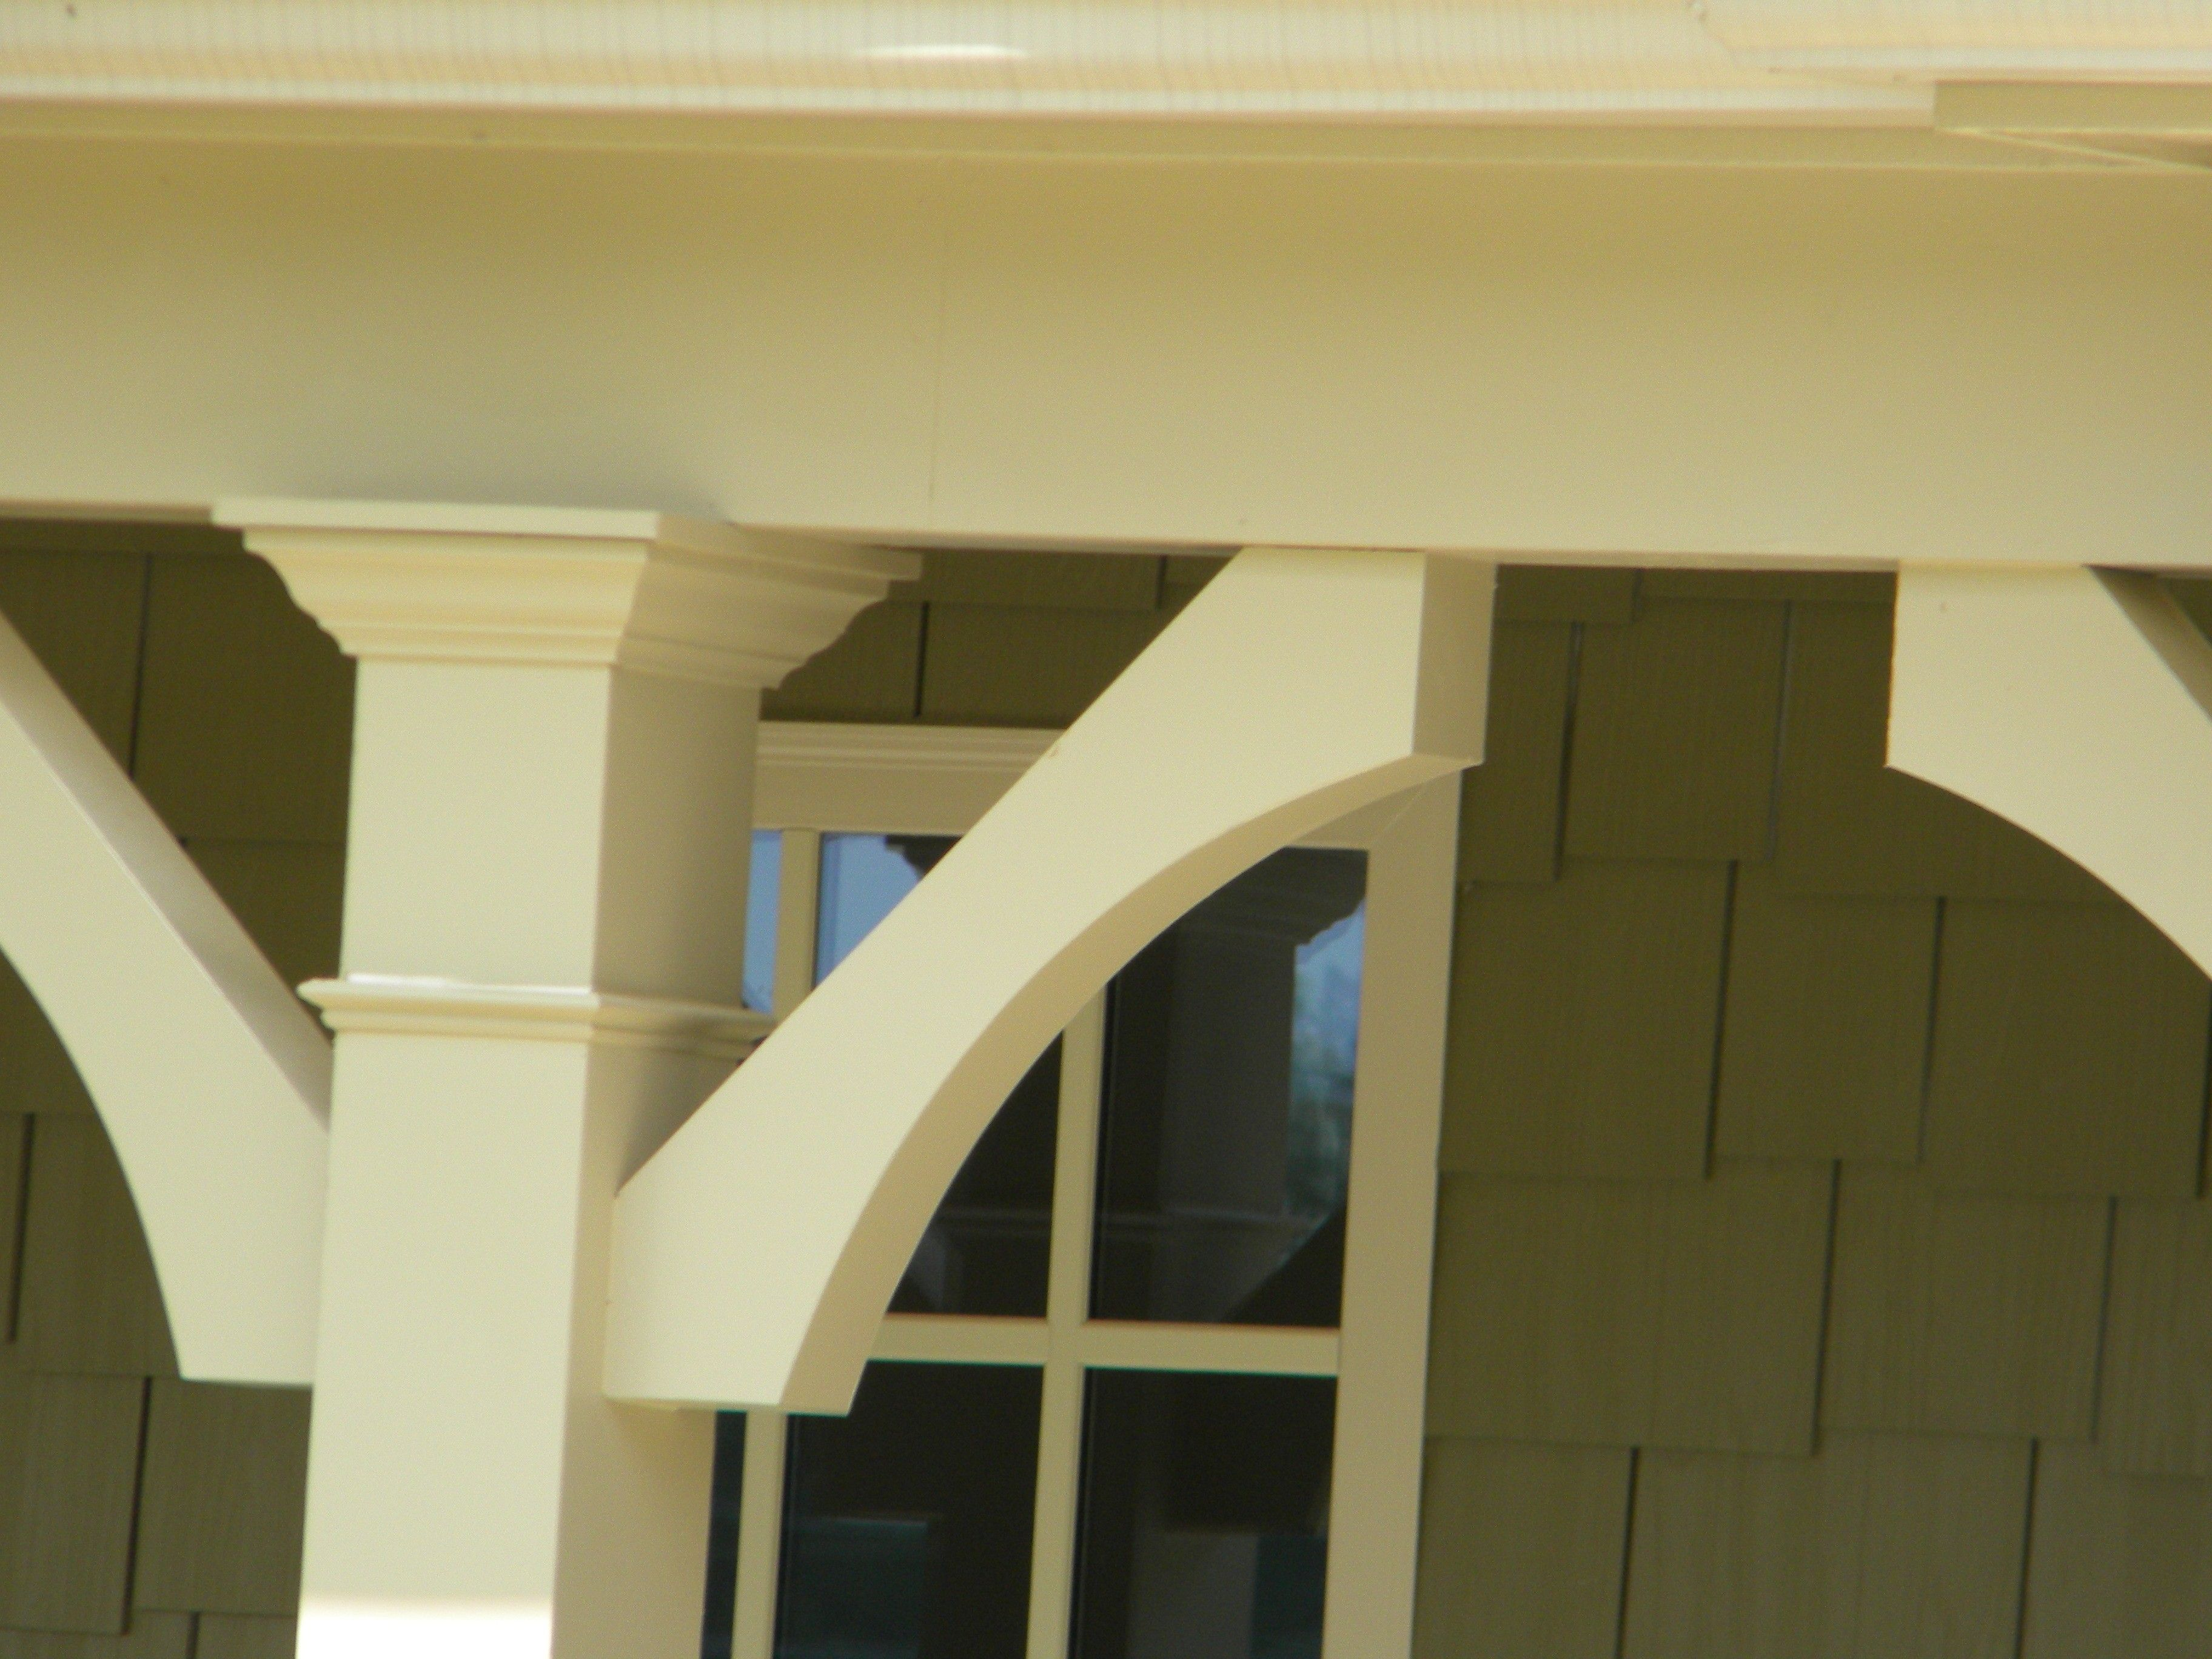 PVC Arch Porch Bracket | Porch posts | Pinterest | Porch, Arch and ...